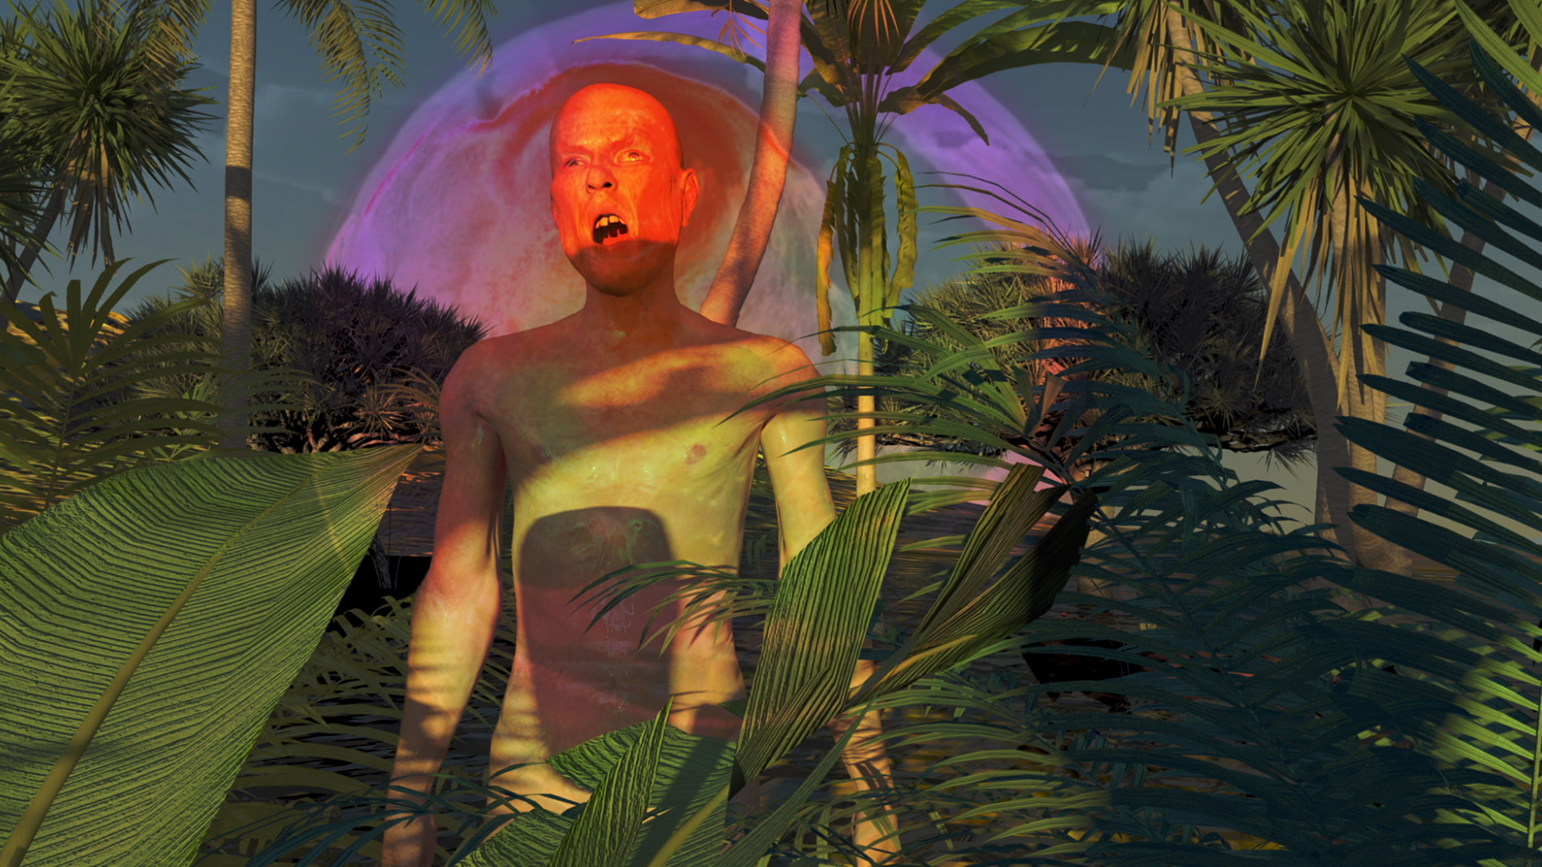 Digitally created image of a figure standing in a jungle with his mouth open at sunset or sunrise